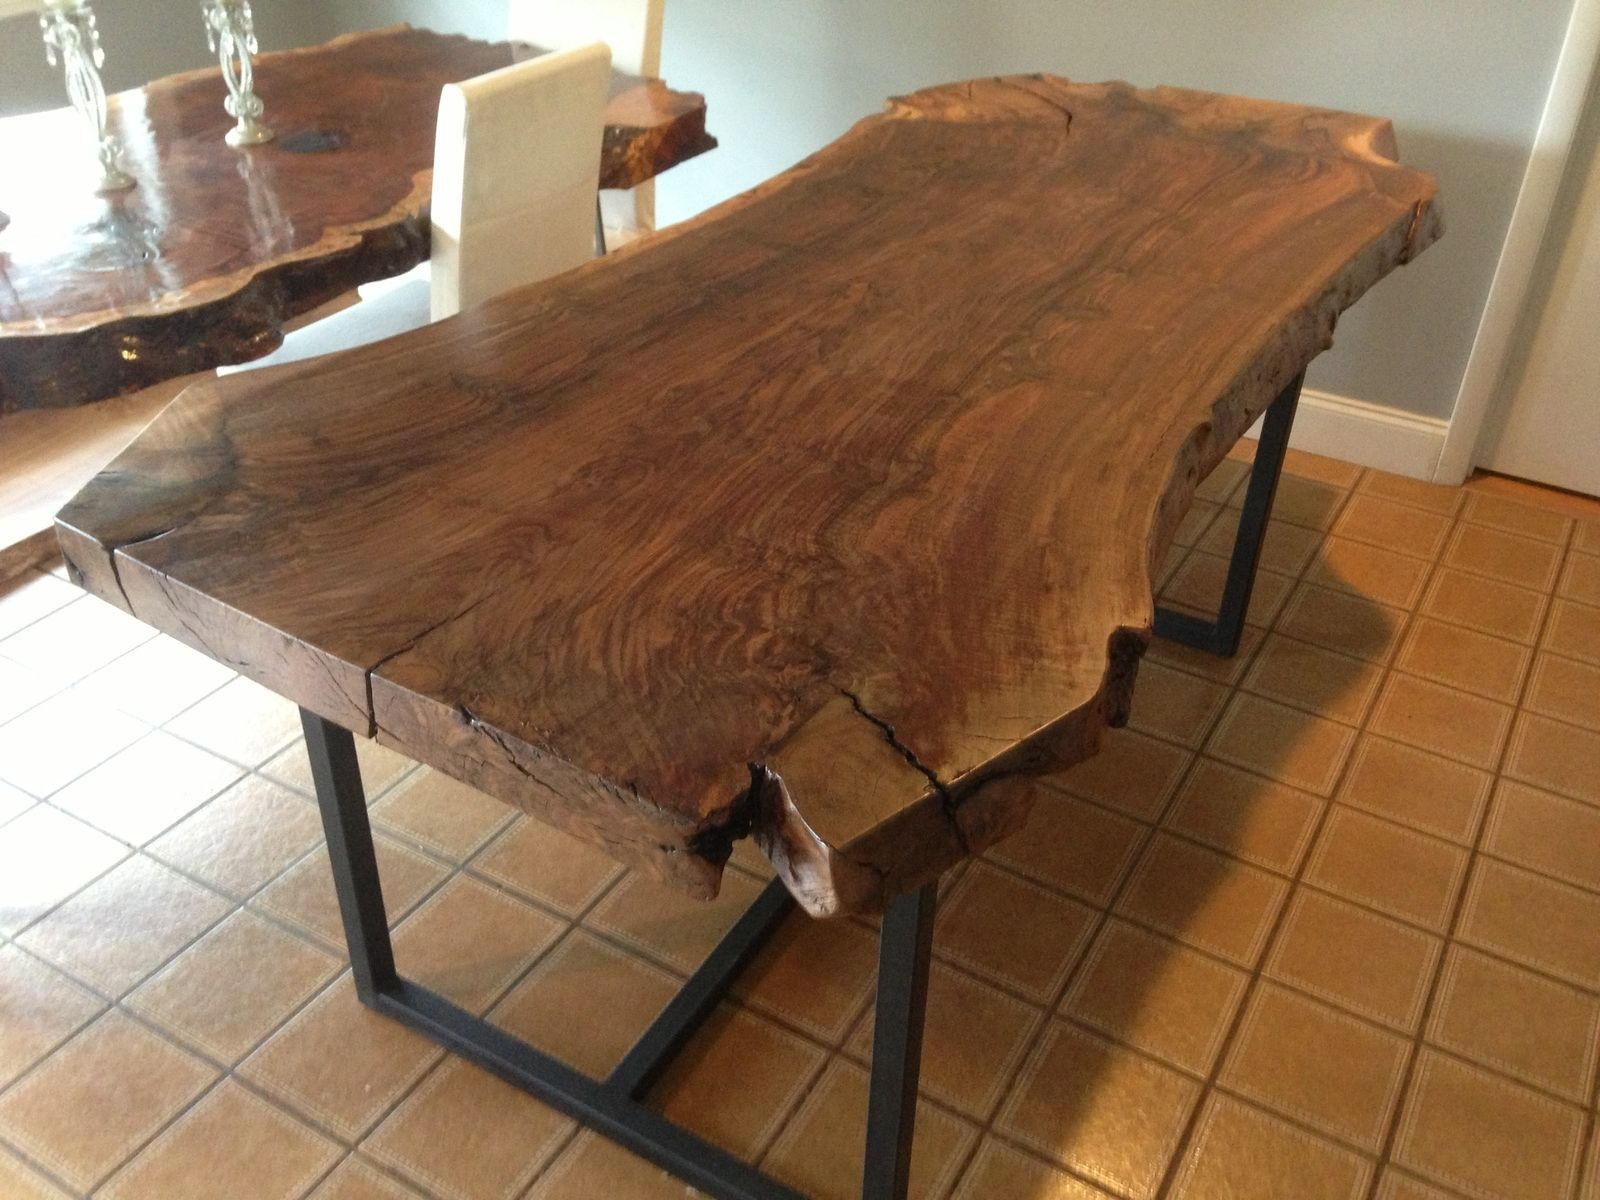 Handmade Live Edge Claro Walnut Dining Table by Ozma  : 136507504079 from www.custommade.com size 1600 x 1200 jpeg 235kB